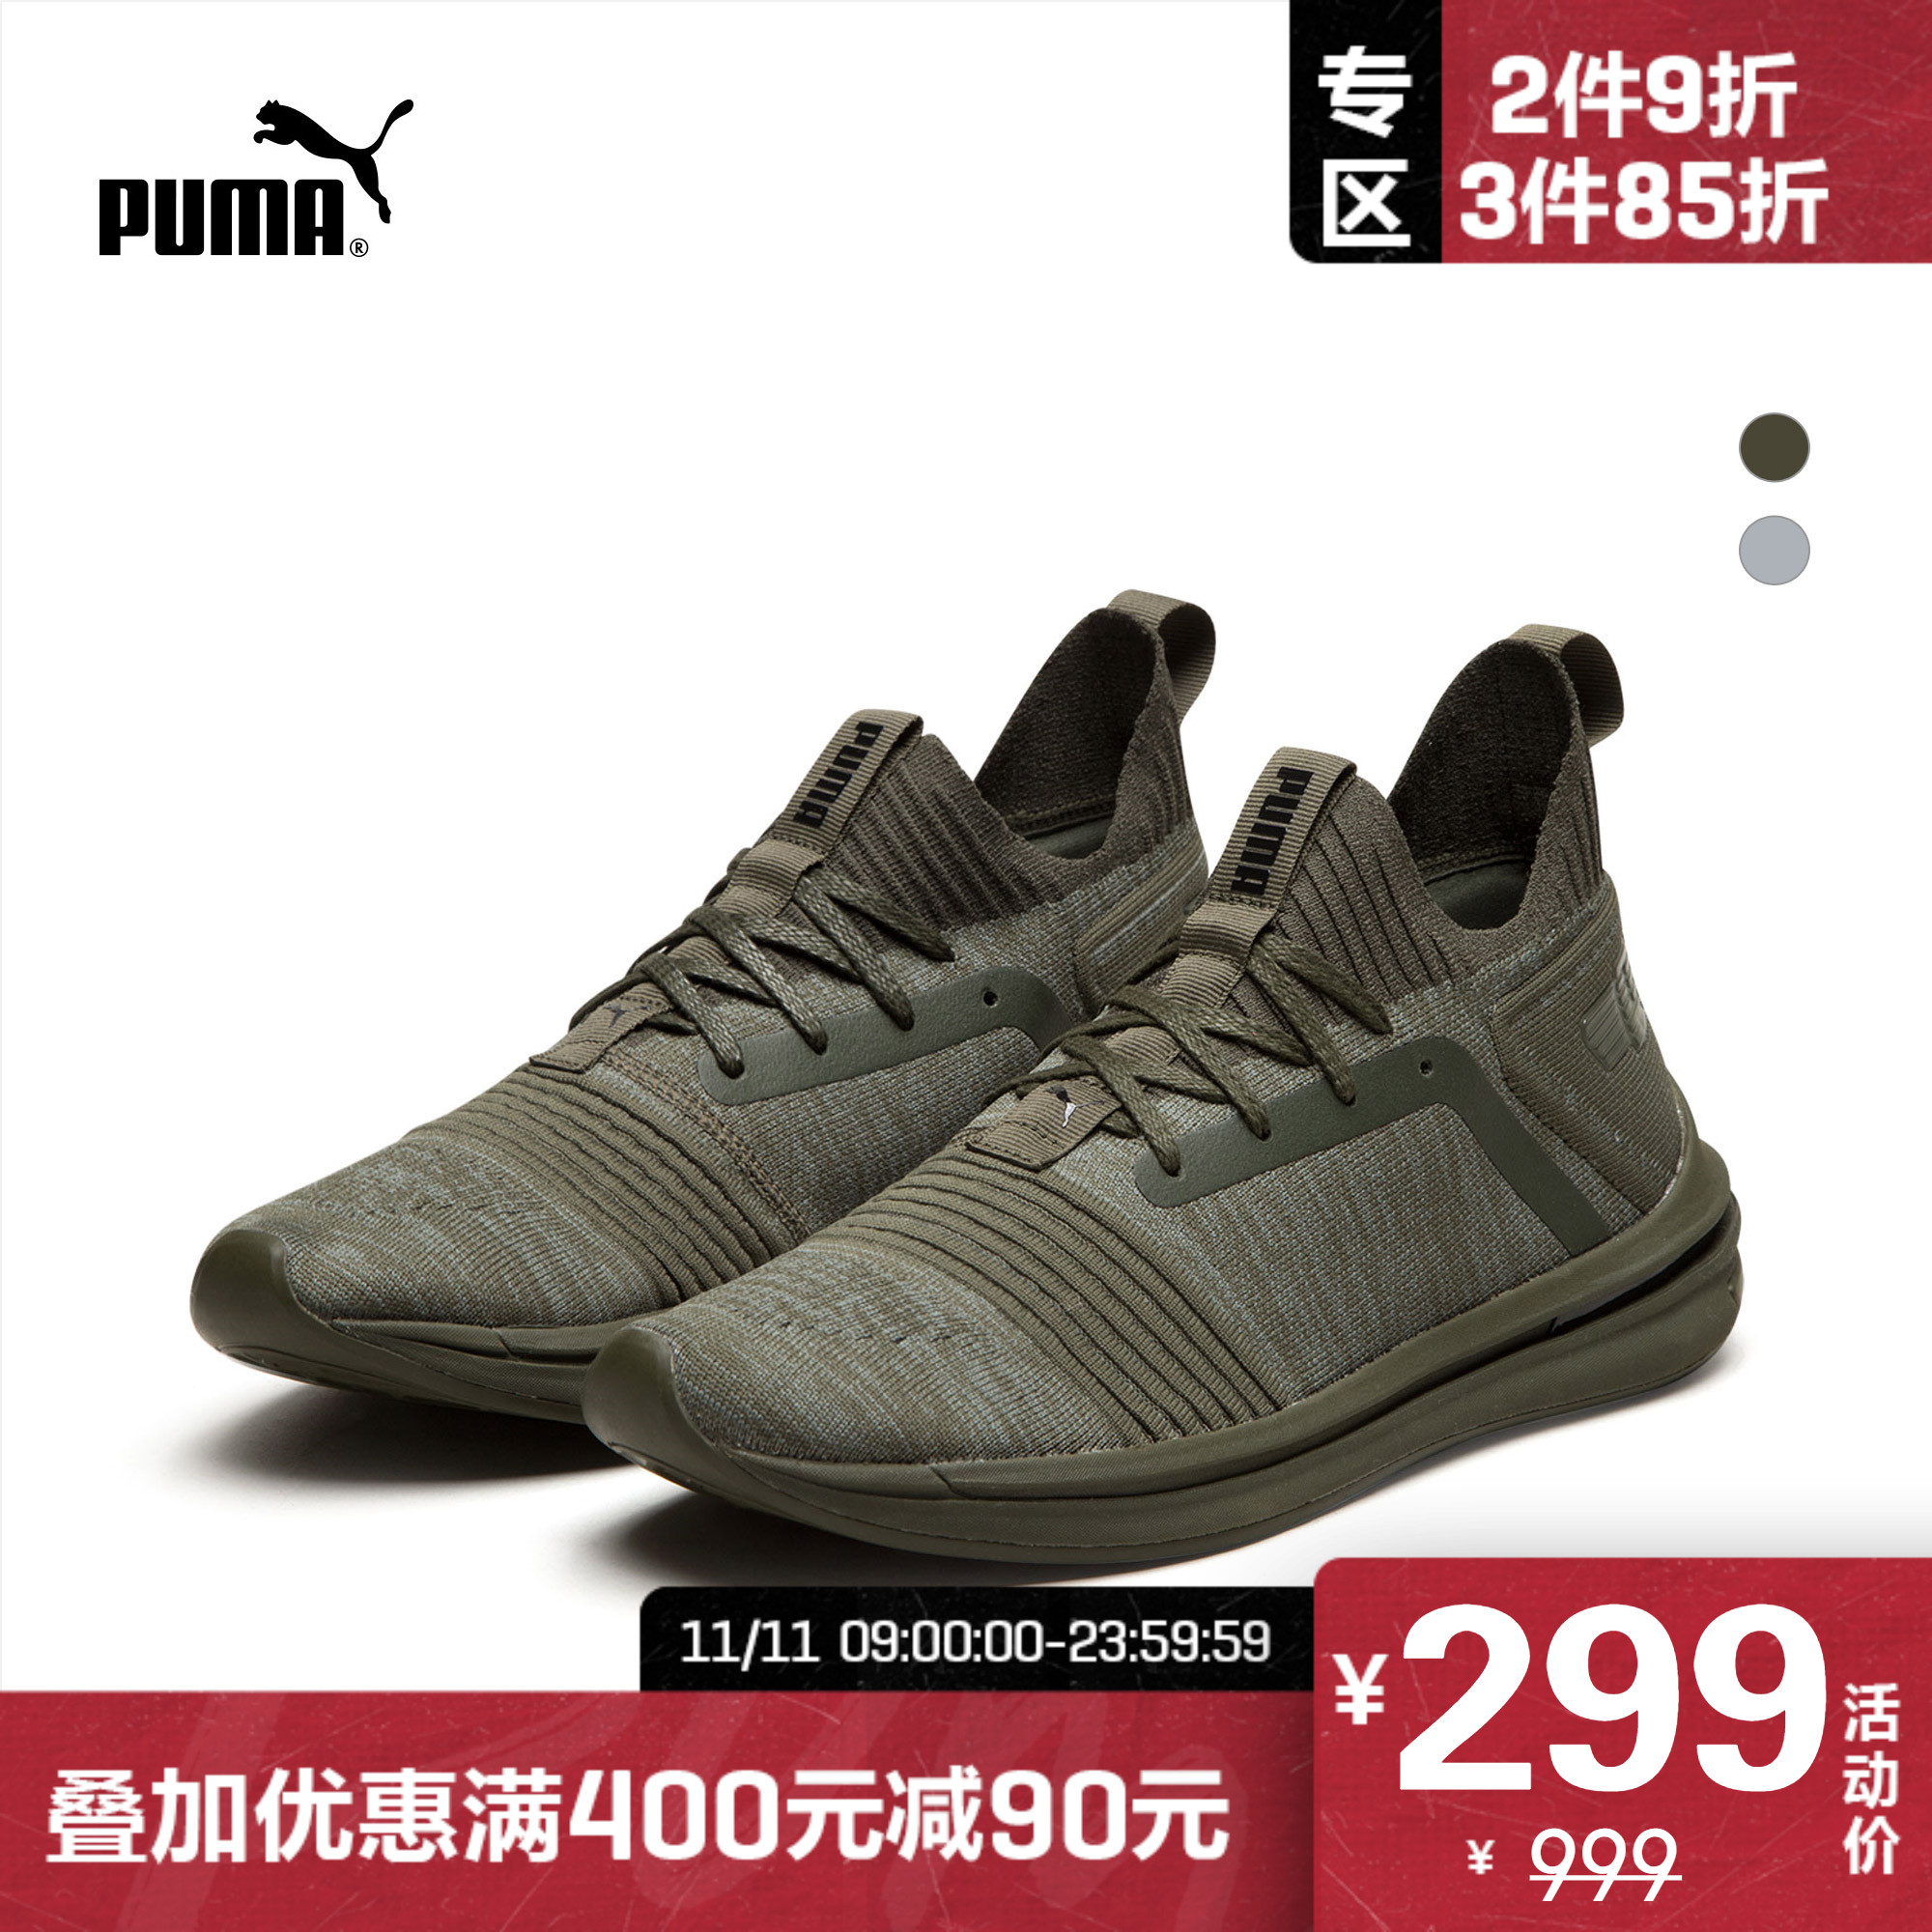 PUMA彪马官方 李现同款 男子跑步鞋 IGNITE Limitless SR 190484